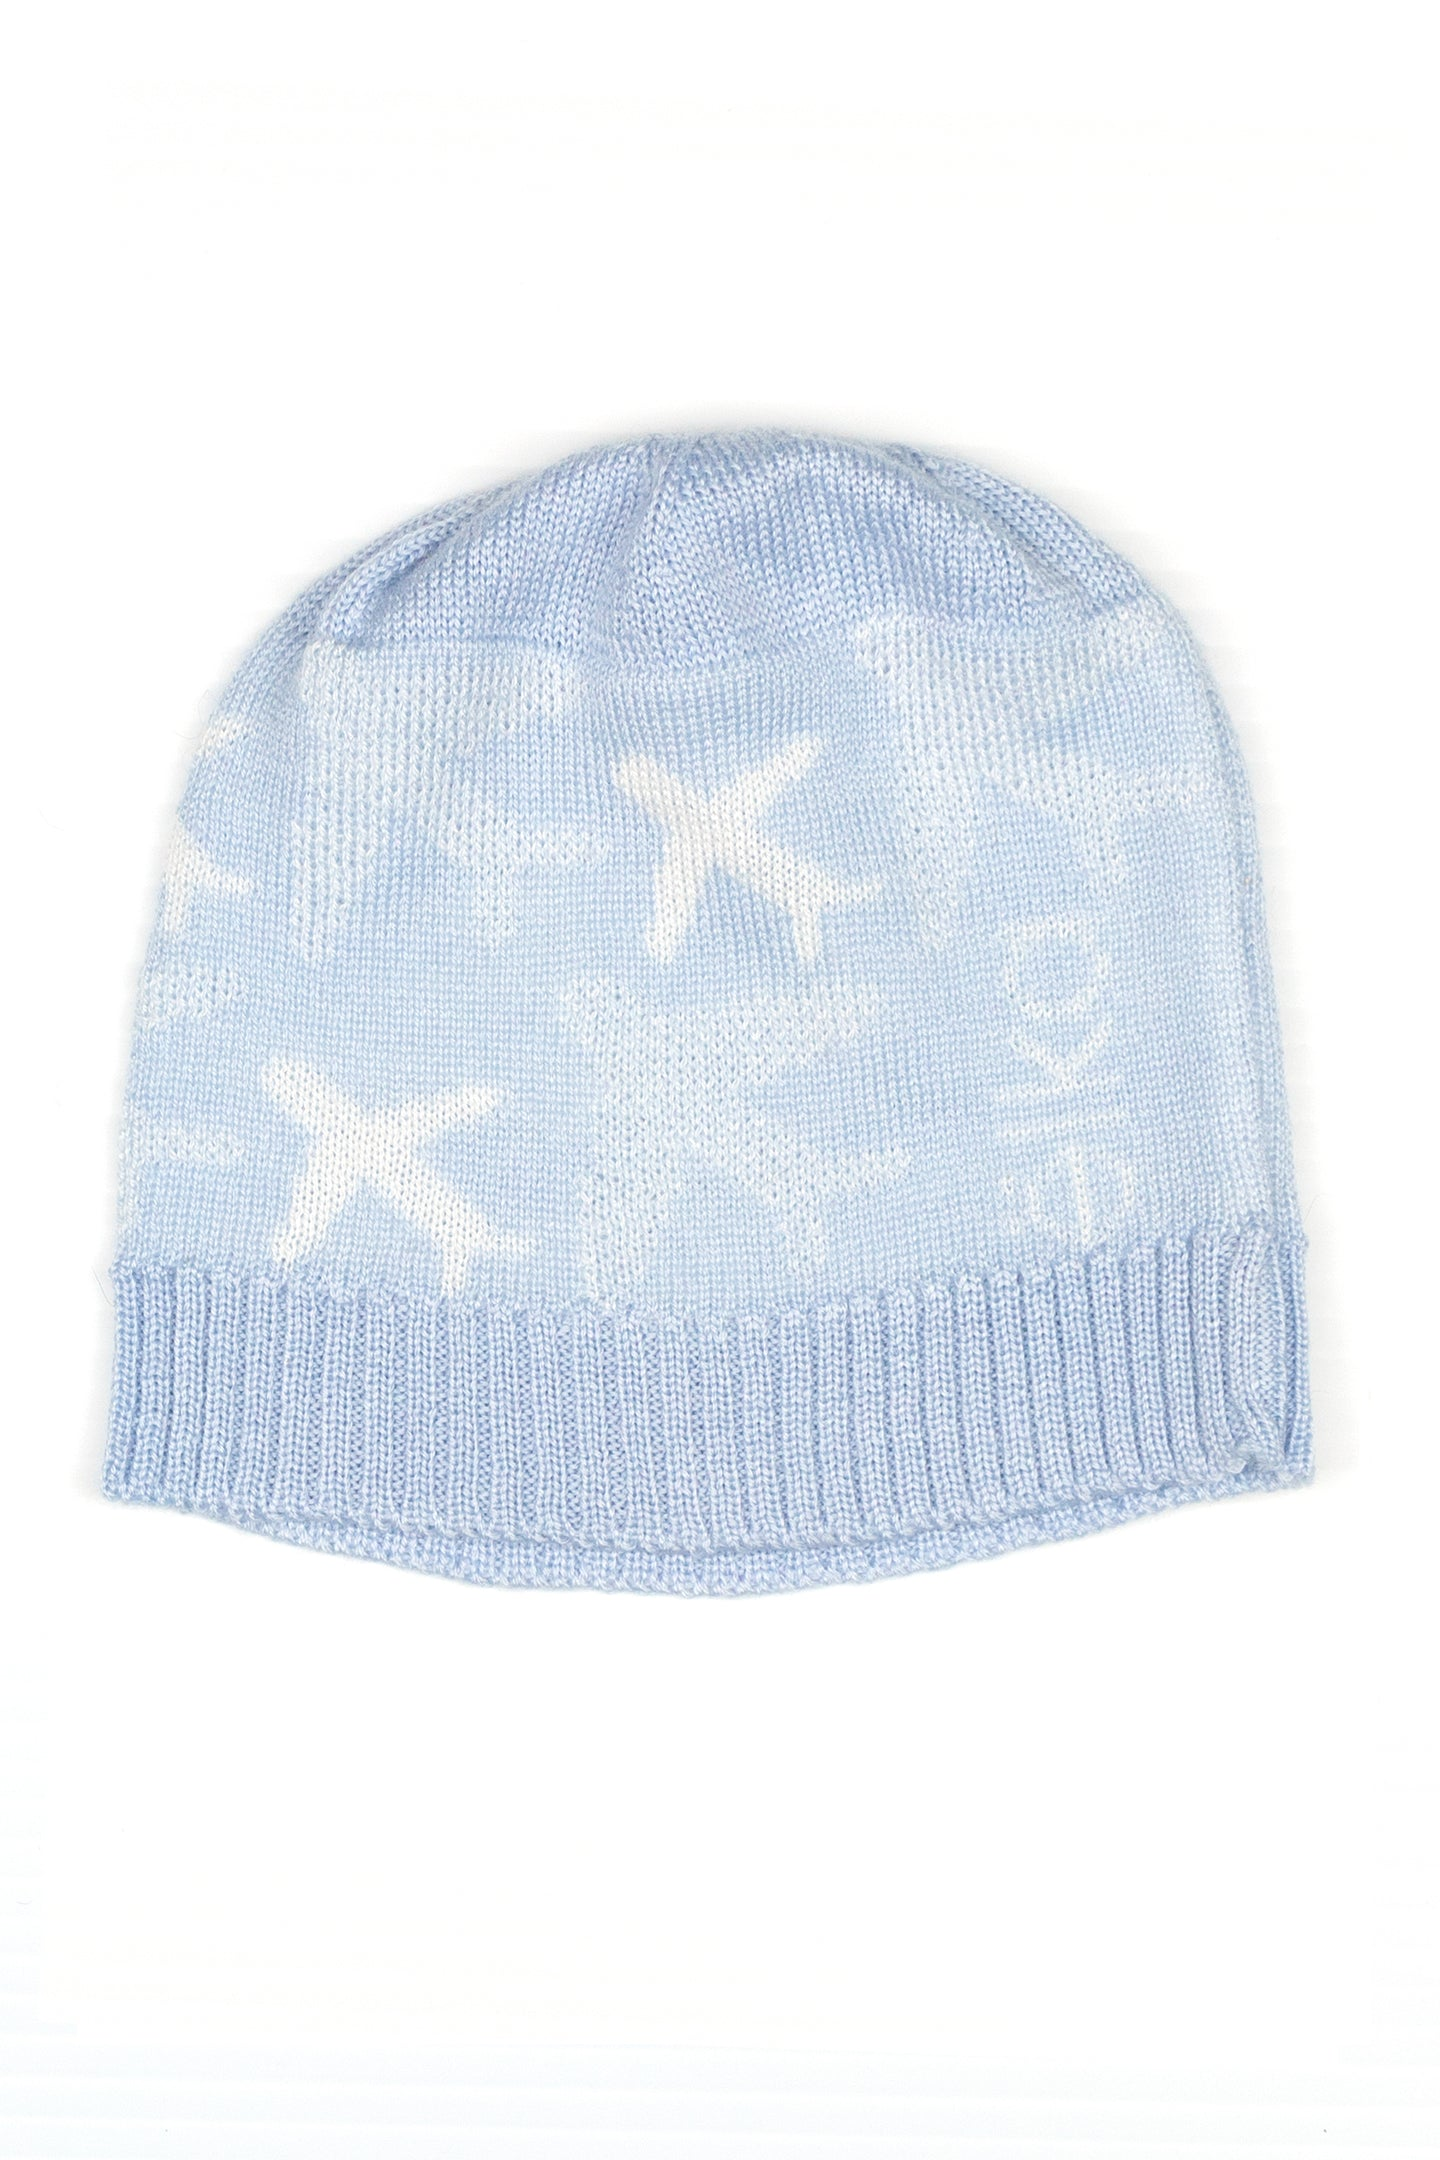 Merino and Silk Baby Beanie in Blue